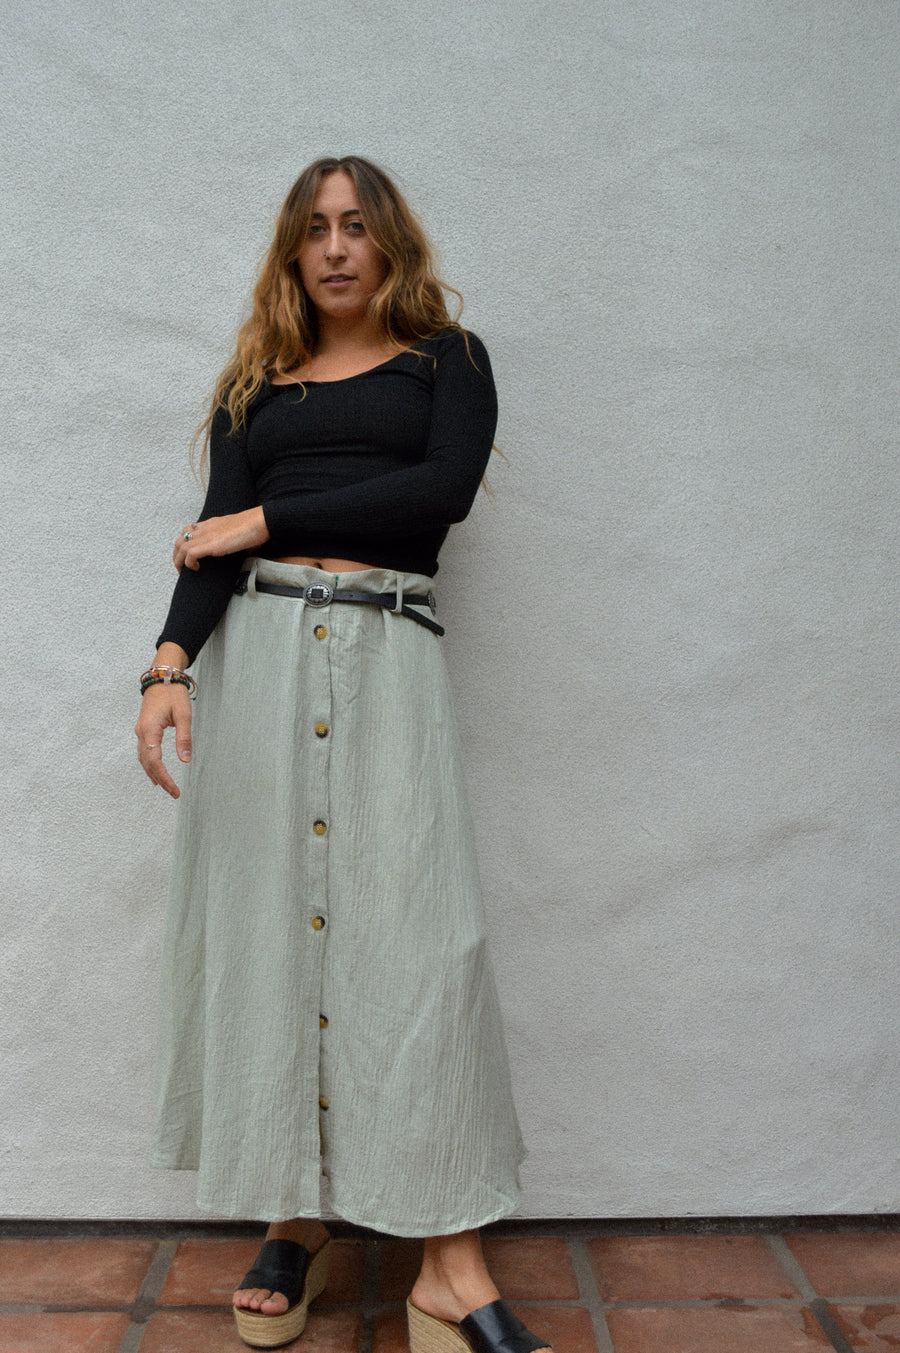 Flowy Sage Button-down Skirt || bohemian, boho style, hippie style, flowy skirt, vintage skirt, buttons, casual skirt, green, aesthetic